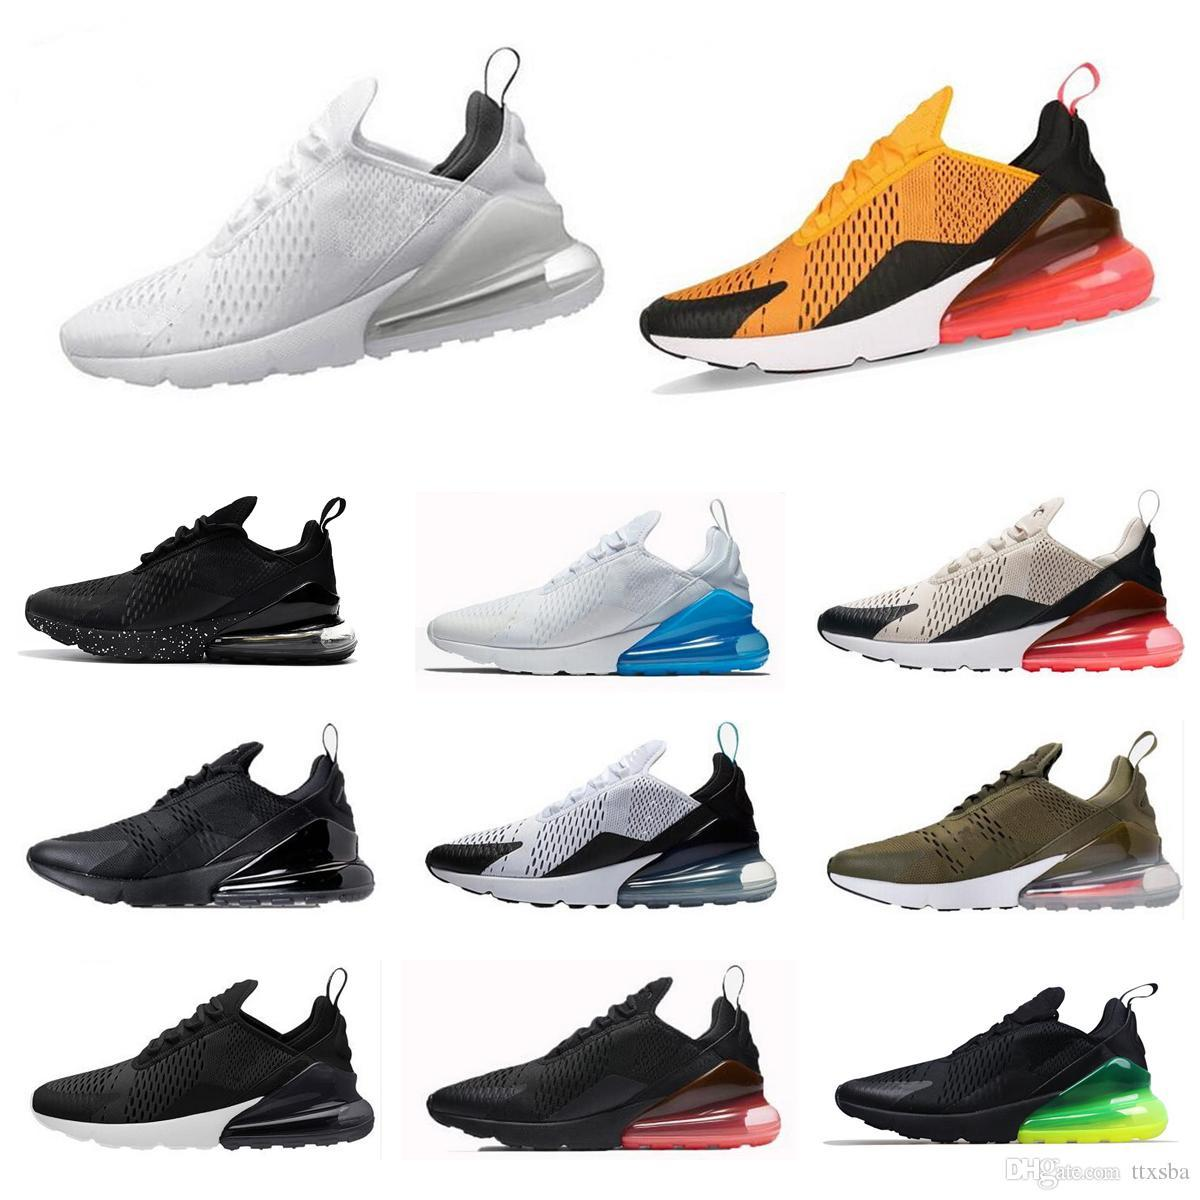 97bd65faaf5b6 Cheap Wholesale Brand New Mens Womens Flair Triple White Black 270 AH8050  Trainer Casual Shoes Training 27C Sports Sneakers Size 36-45